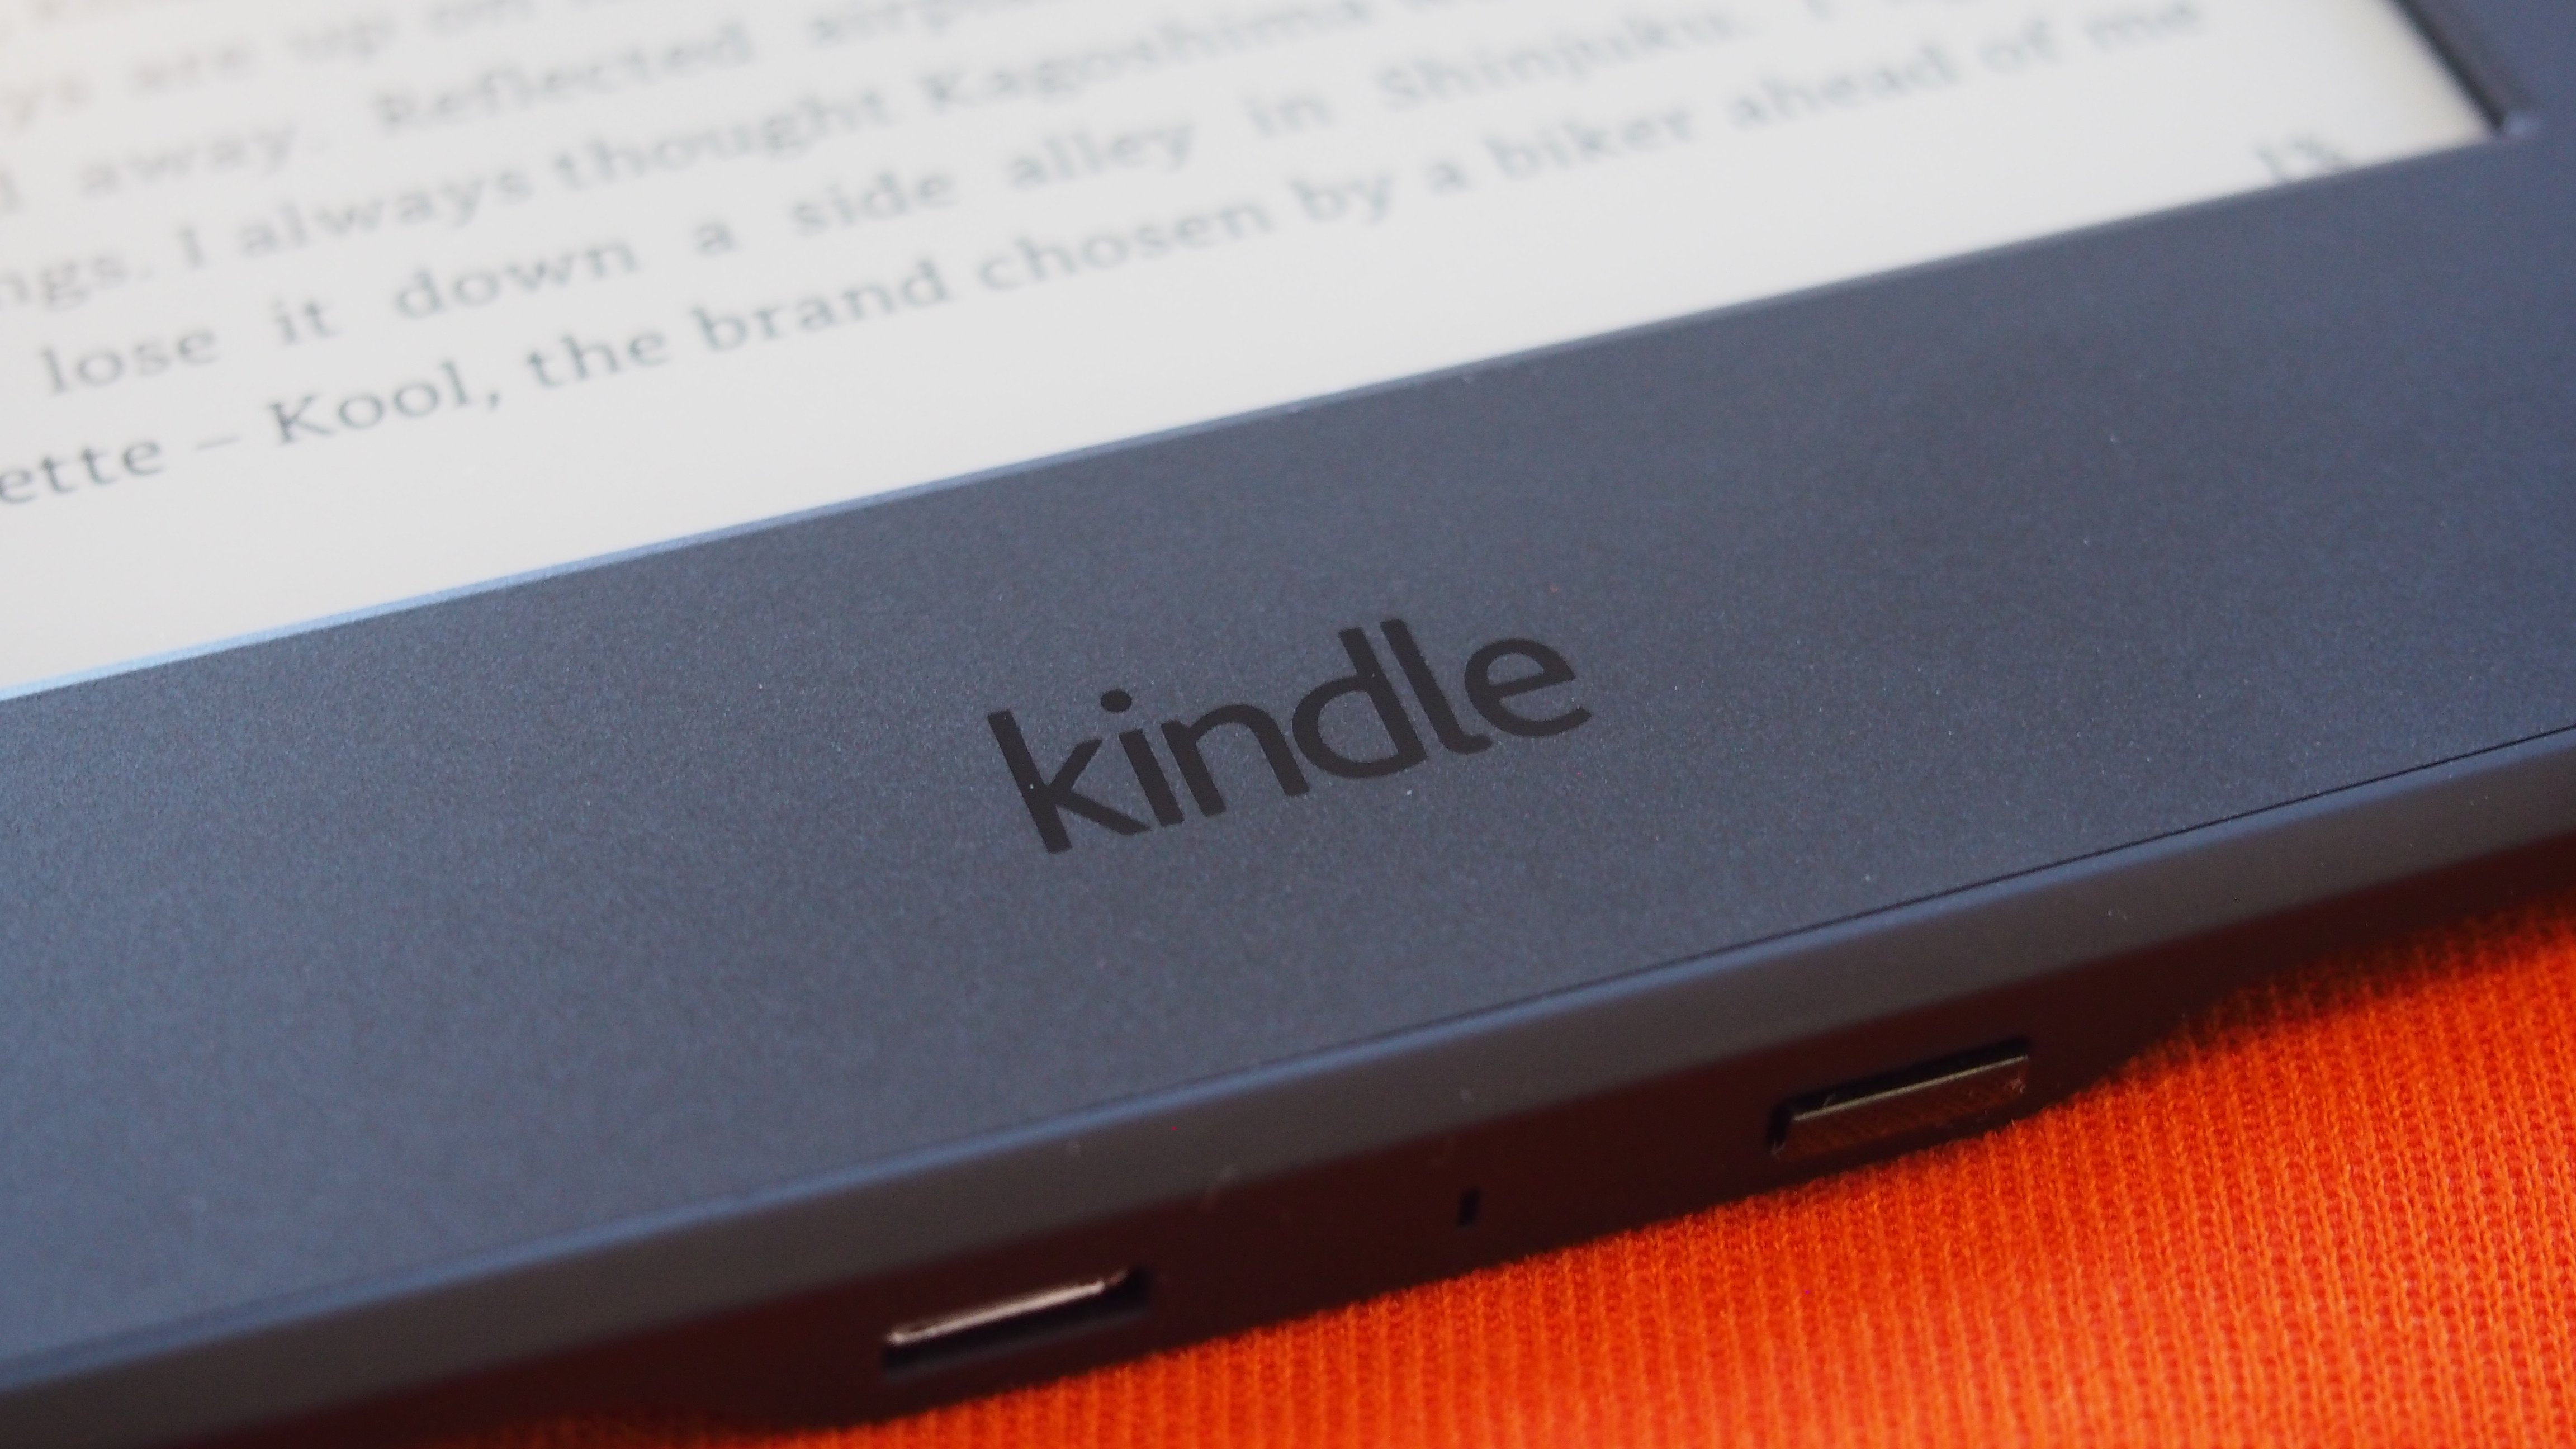 Kindle Paperwhite (2015) review: For a great all-round